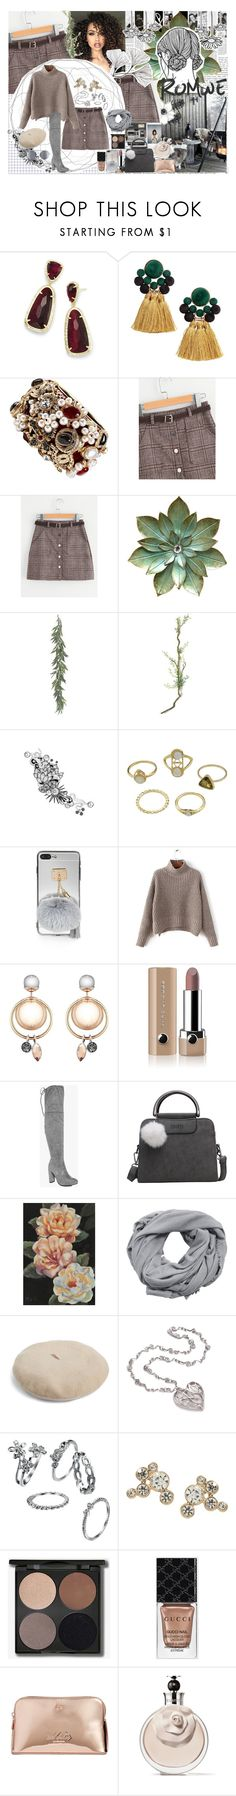 """""""ROMWE Contest Entry: Checkered Skirt With Belt"""" by madeleinebabes ❤ liked on Polyvore featuring Kendra Scott, Chanel, ASAP, Polaroid, Marc Jacobs, Boohoo, NOVICA, MANGO, Gucci and Valentino"""